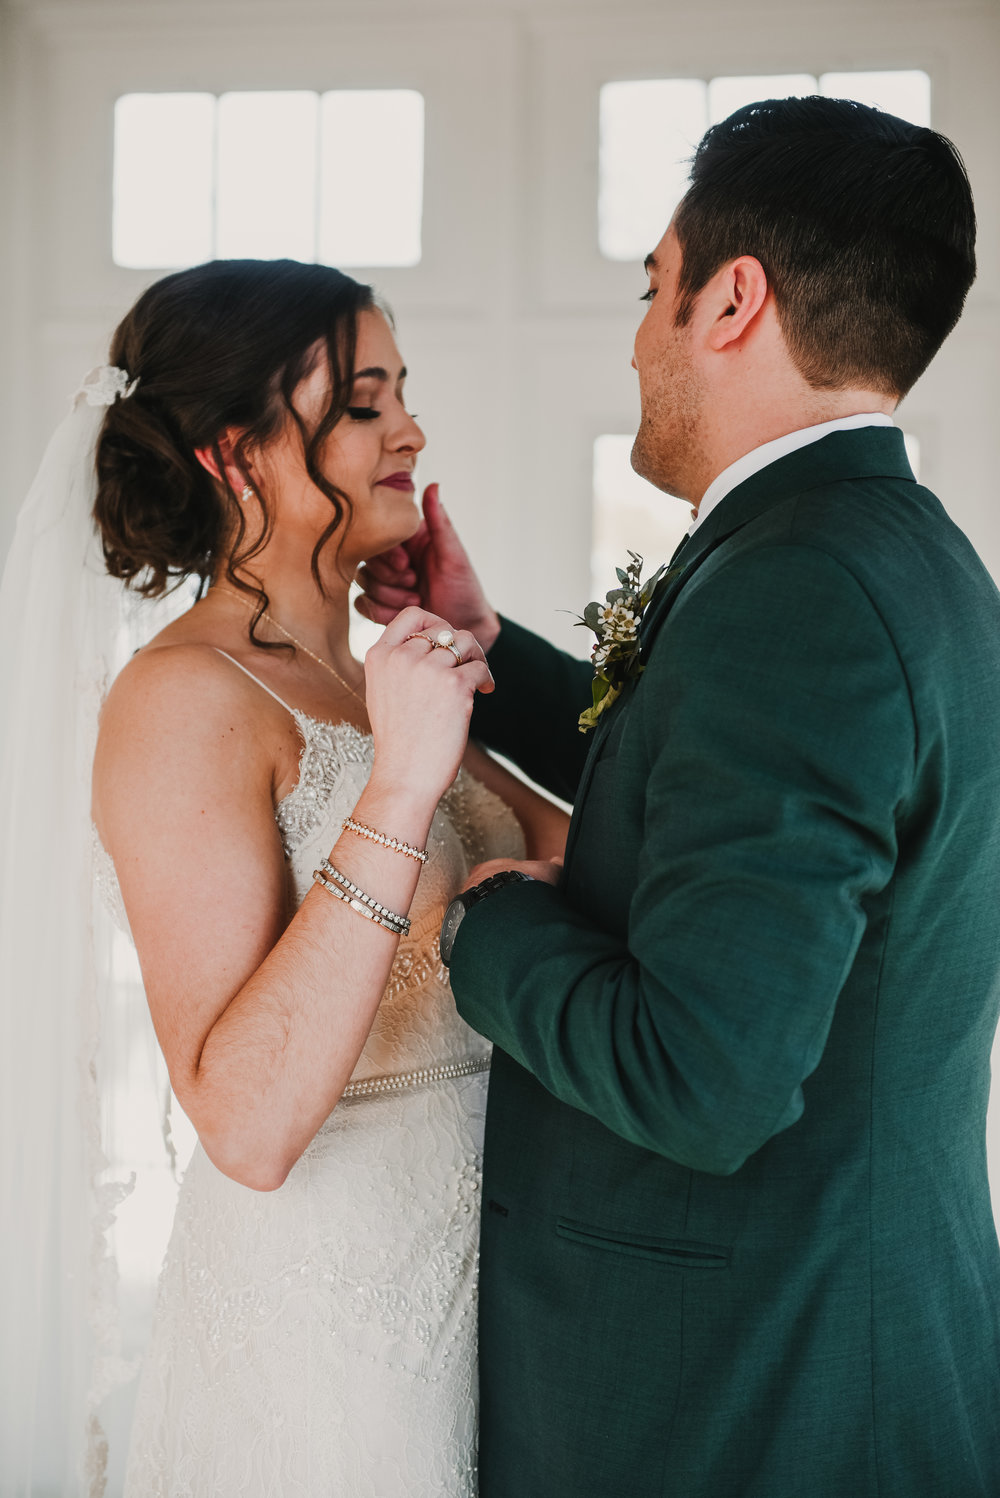 Groom wiping tear off of brides cheek